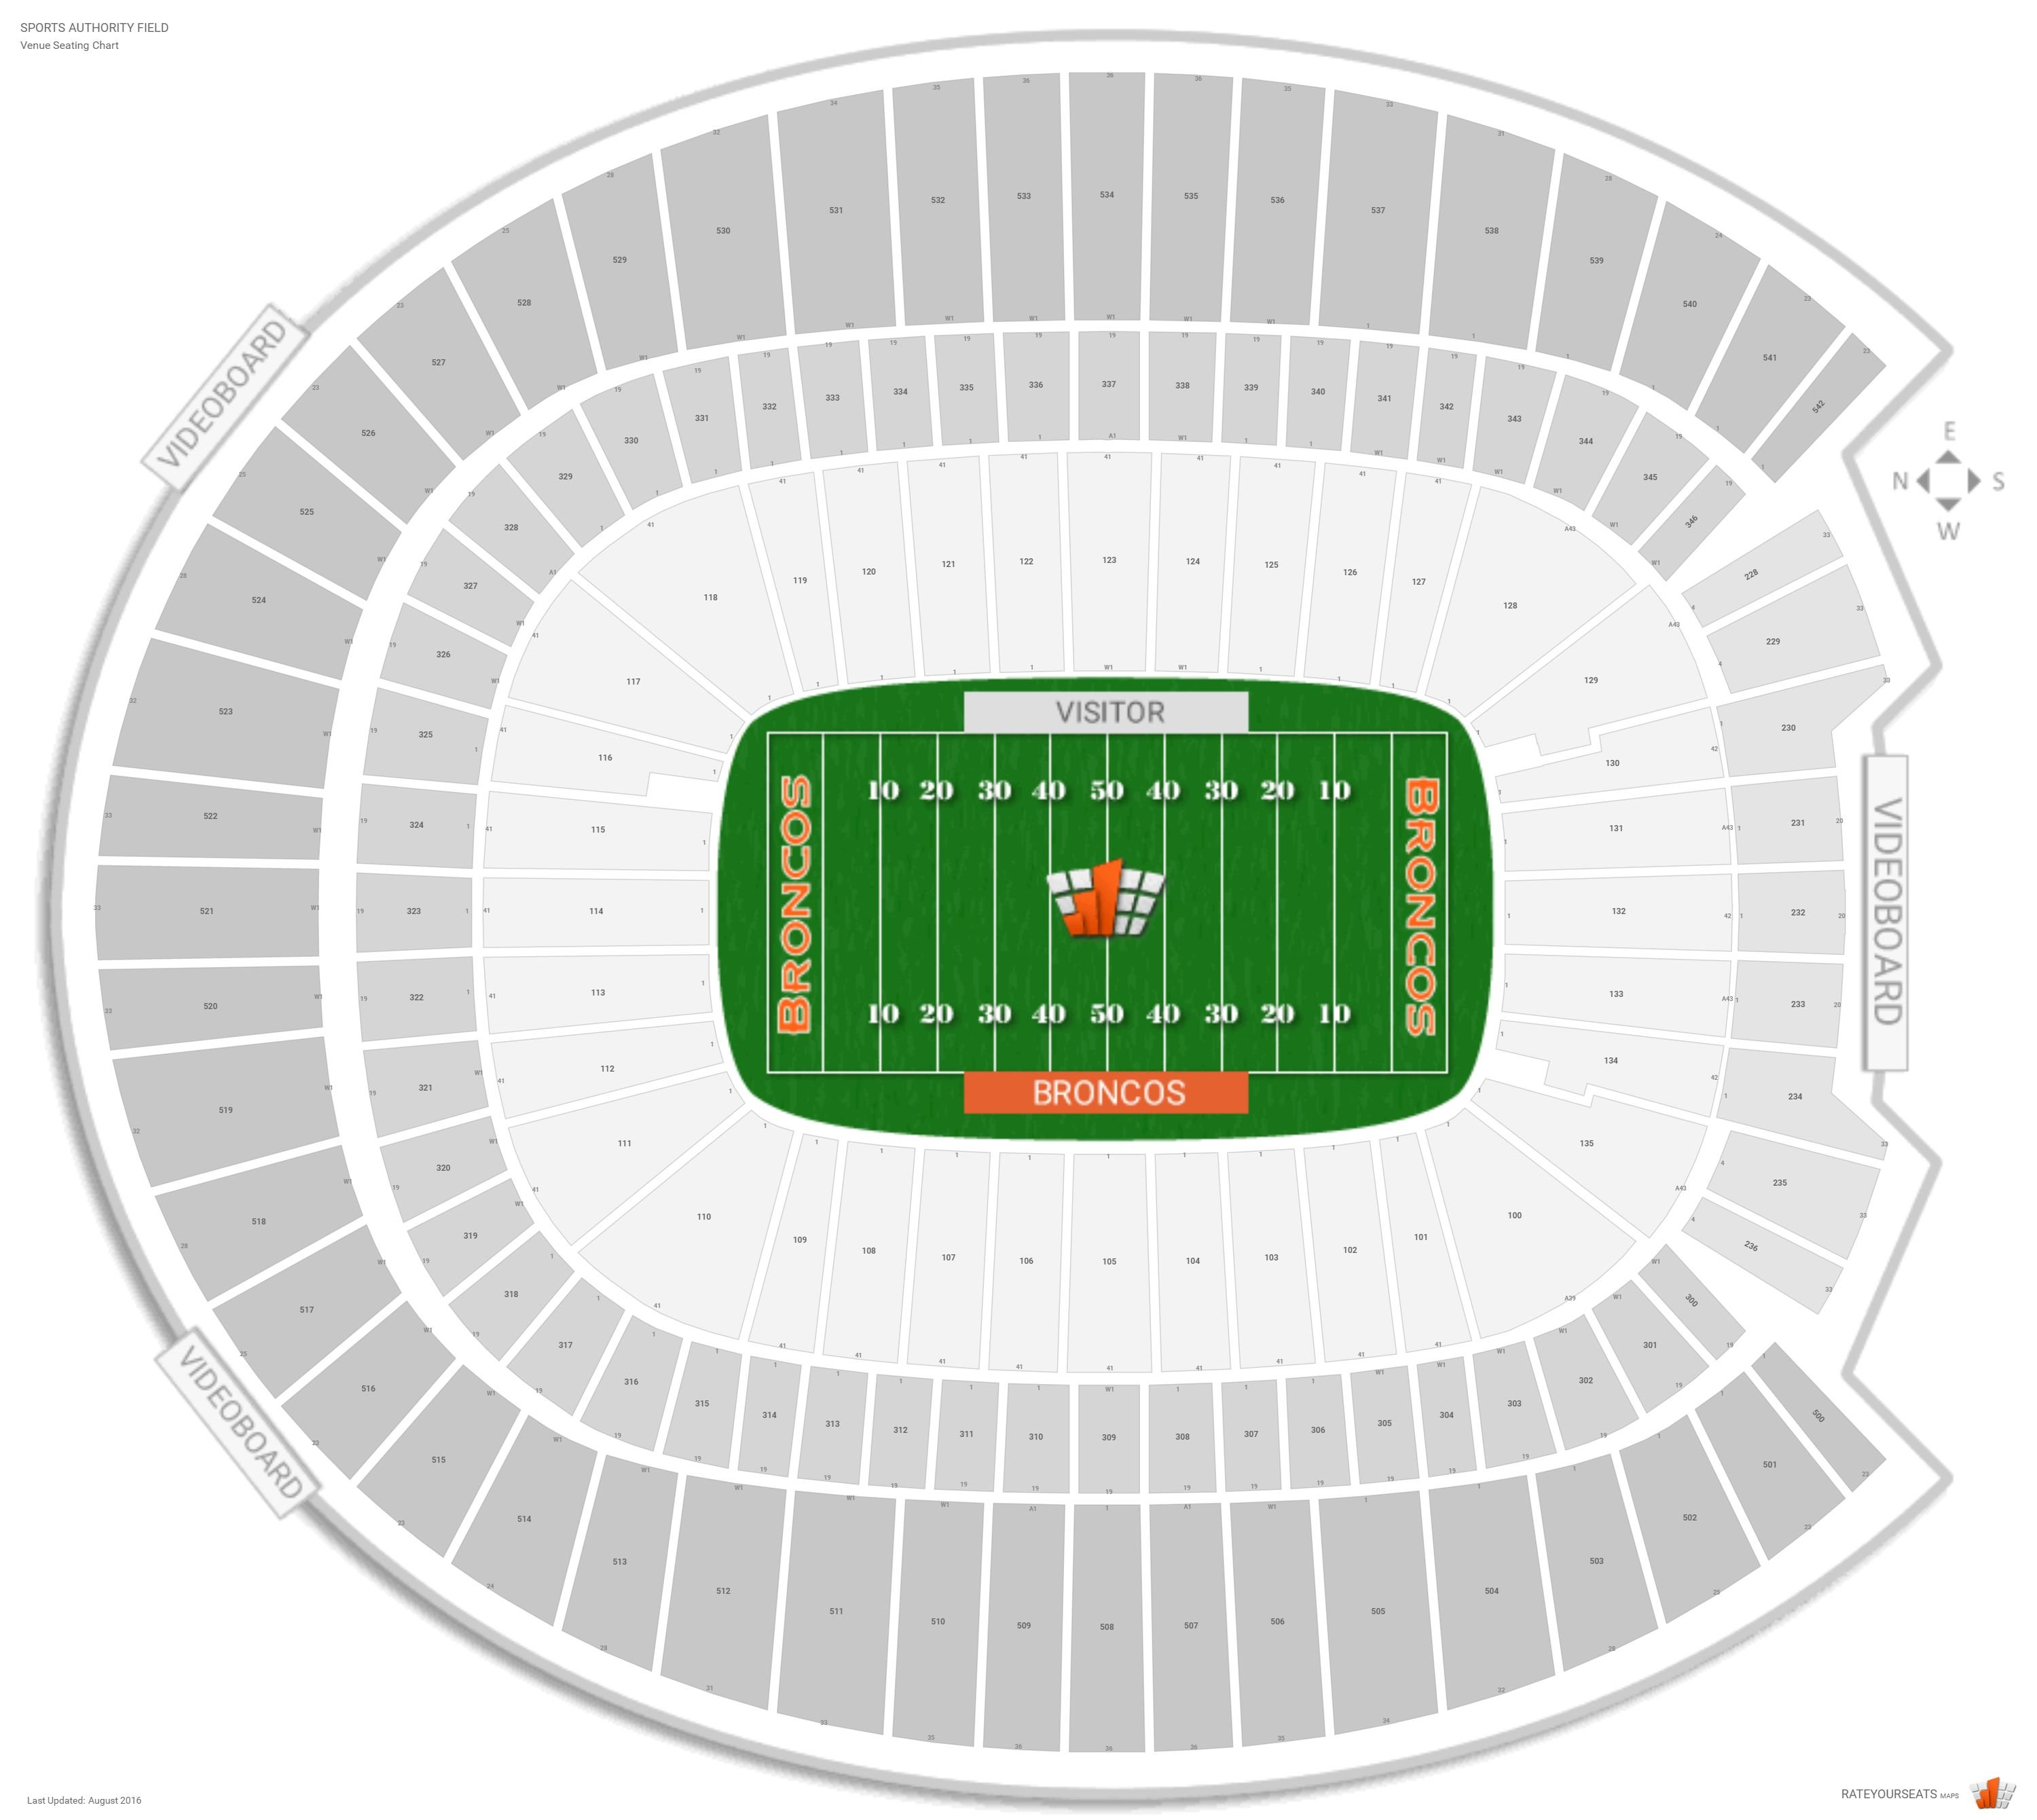 Sports Authority Field Seating Chart with Row Numbers